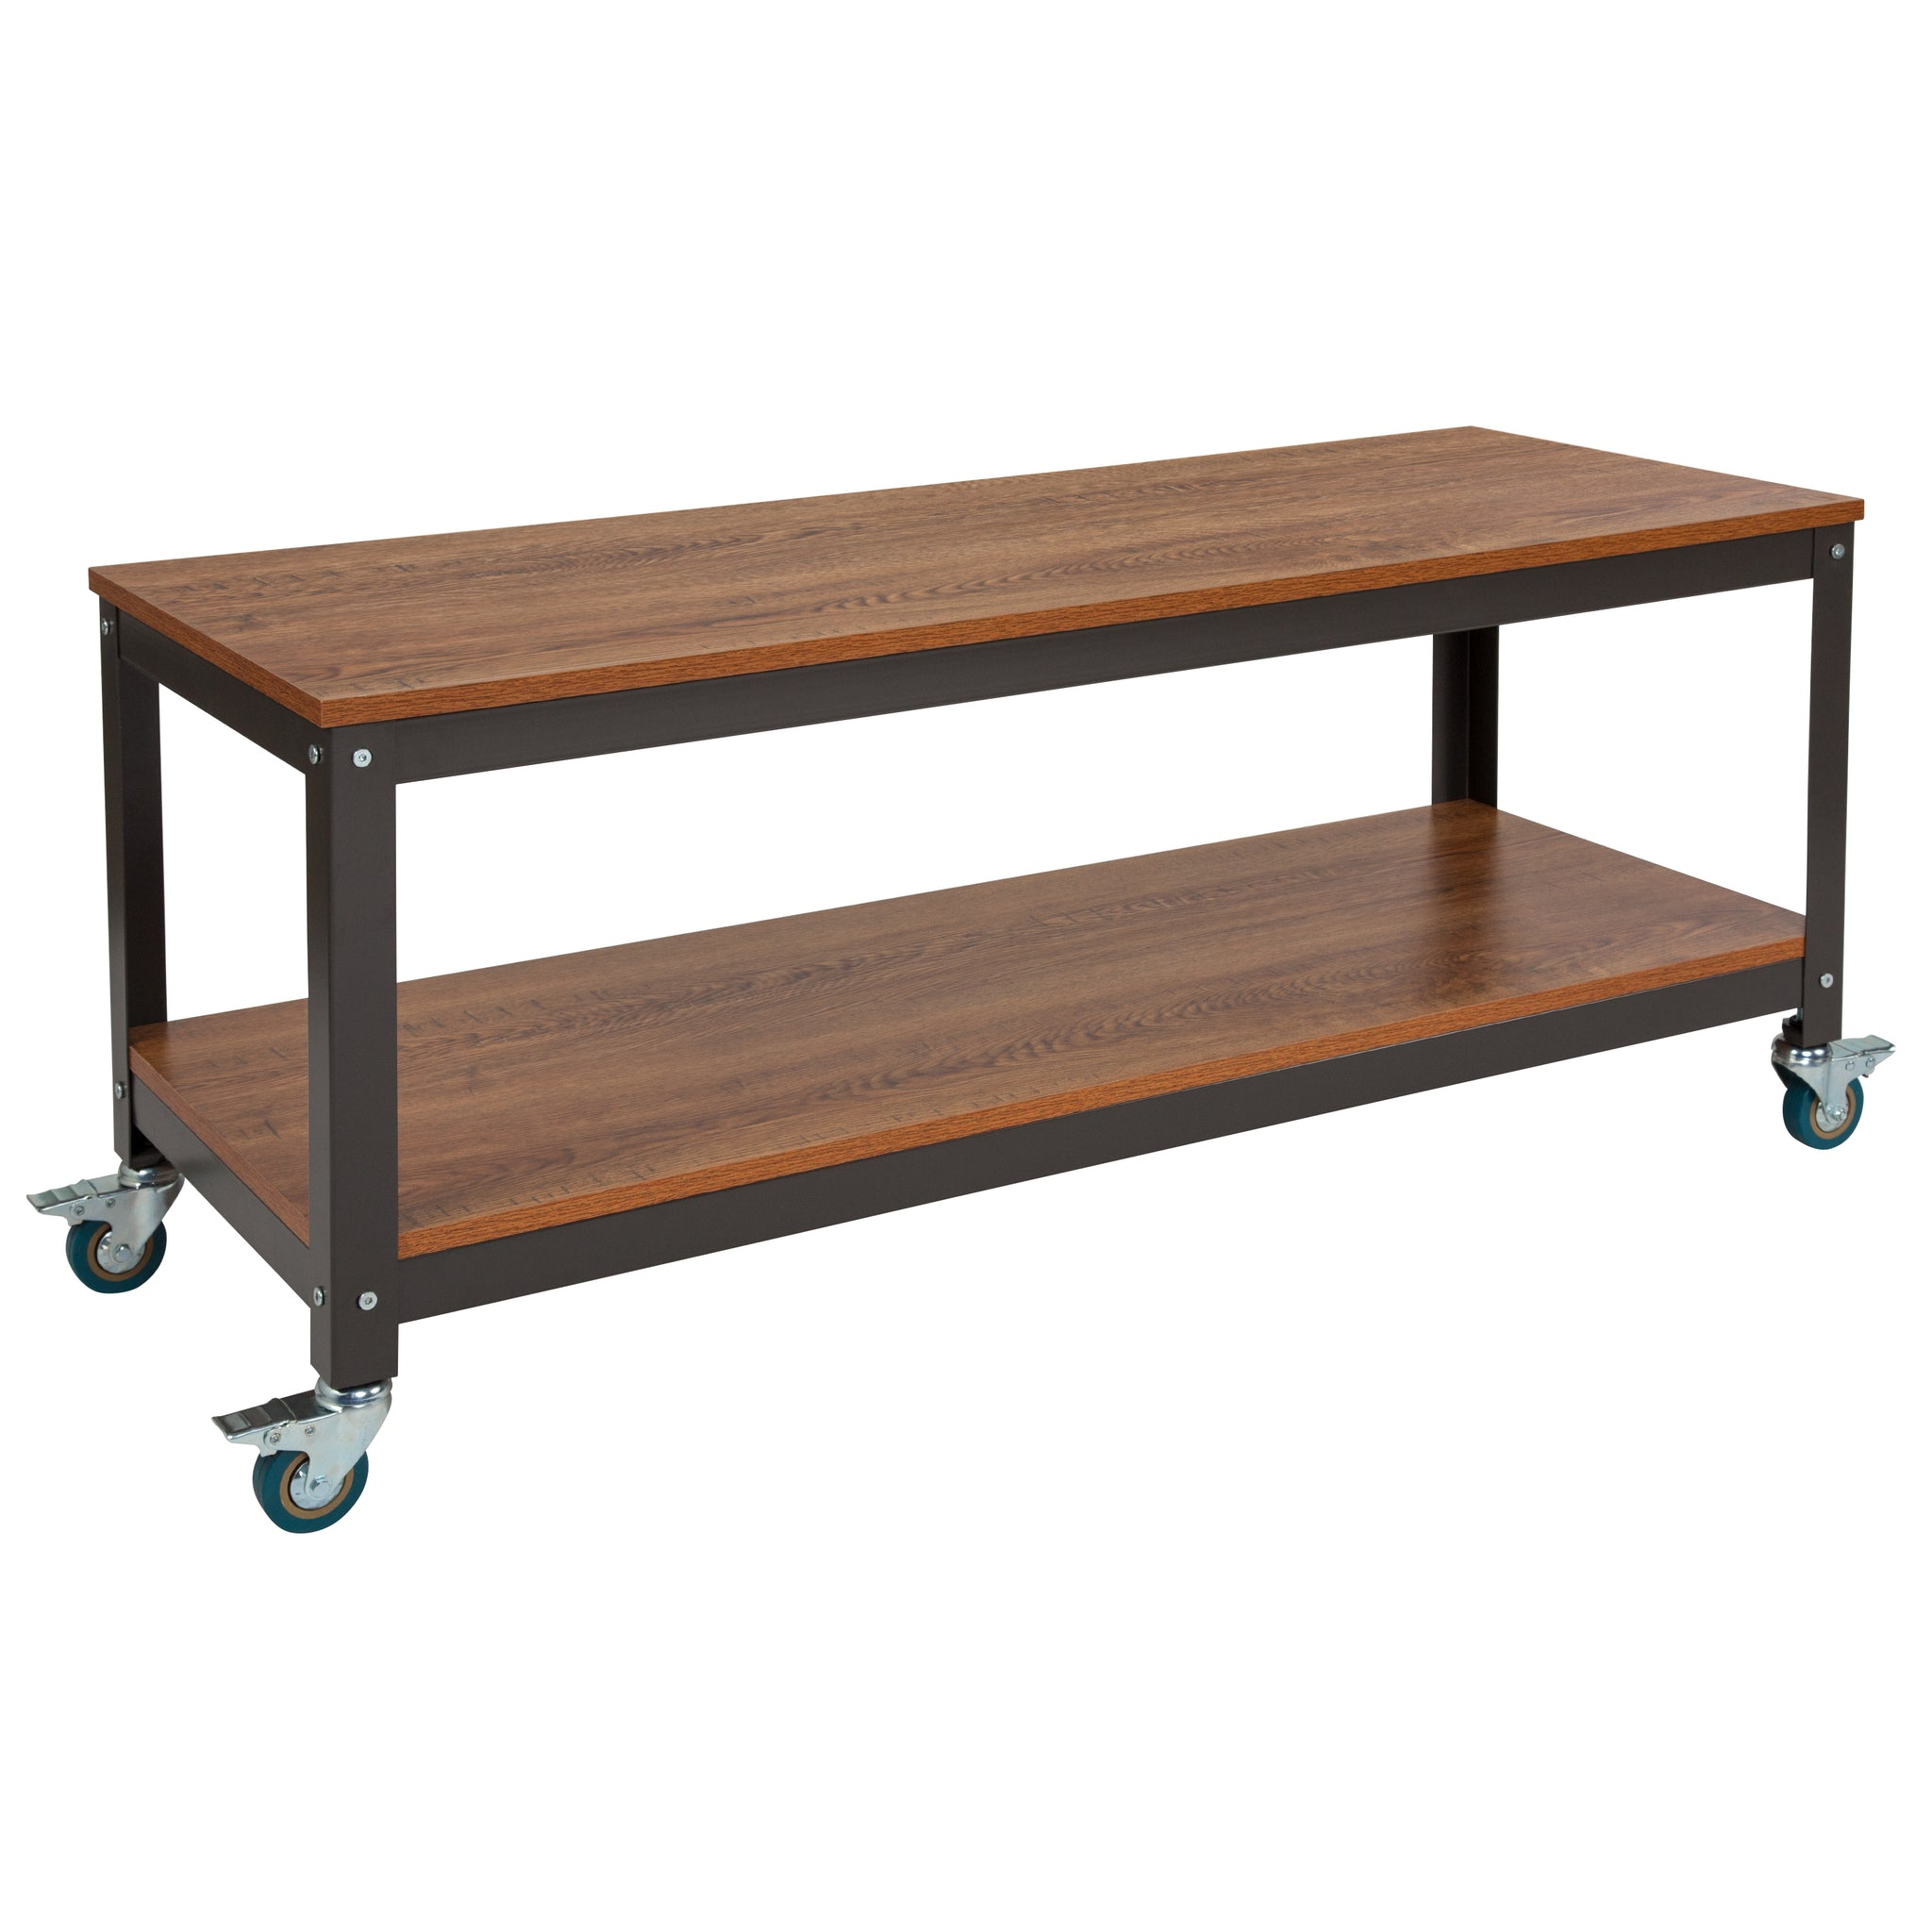 Livingston Collection TV Stand in Wood Grain Finish with Metal Wheels: Brown Oak